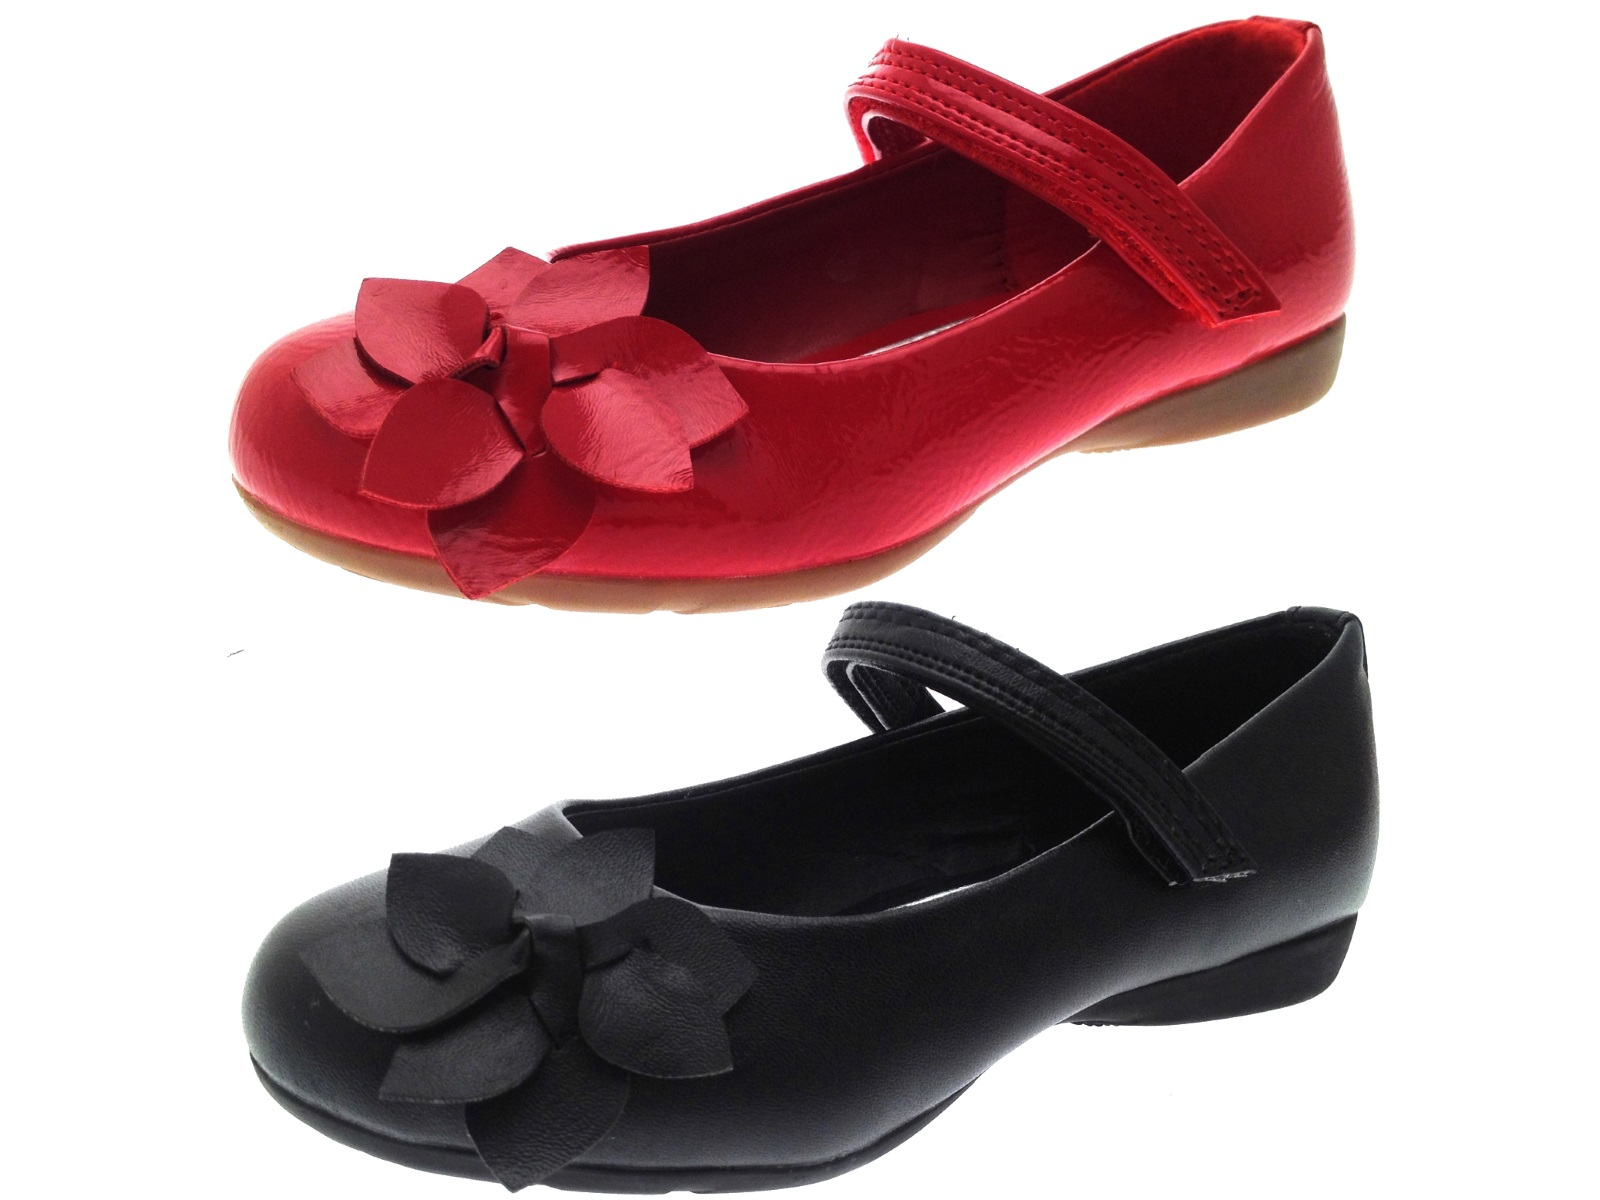 d836cda5ff9 Girls Faux Leather Party Shoes Mary Janes Flower School Childrens Size UK 6  - 12